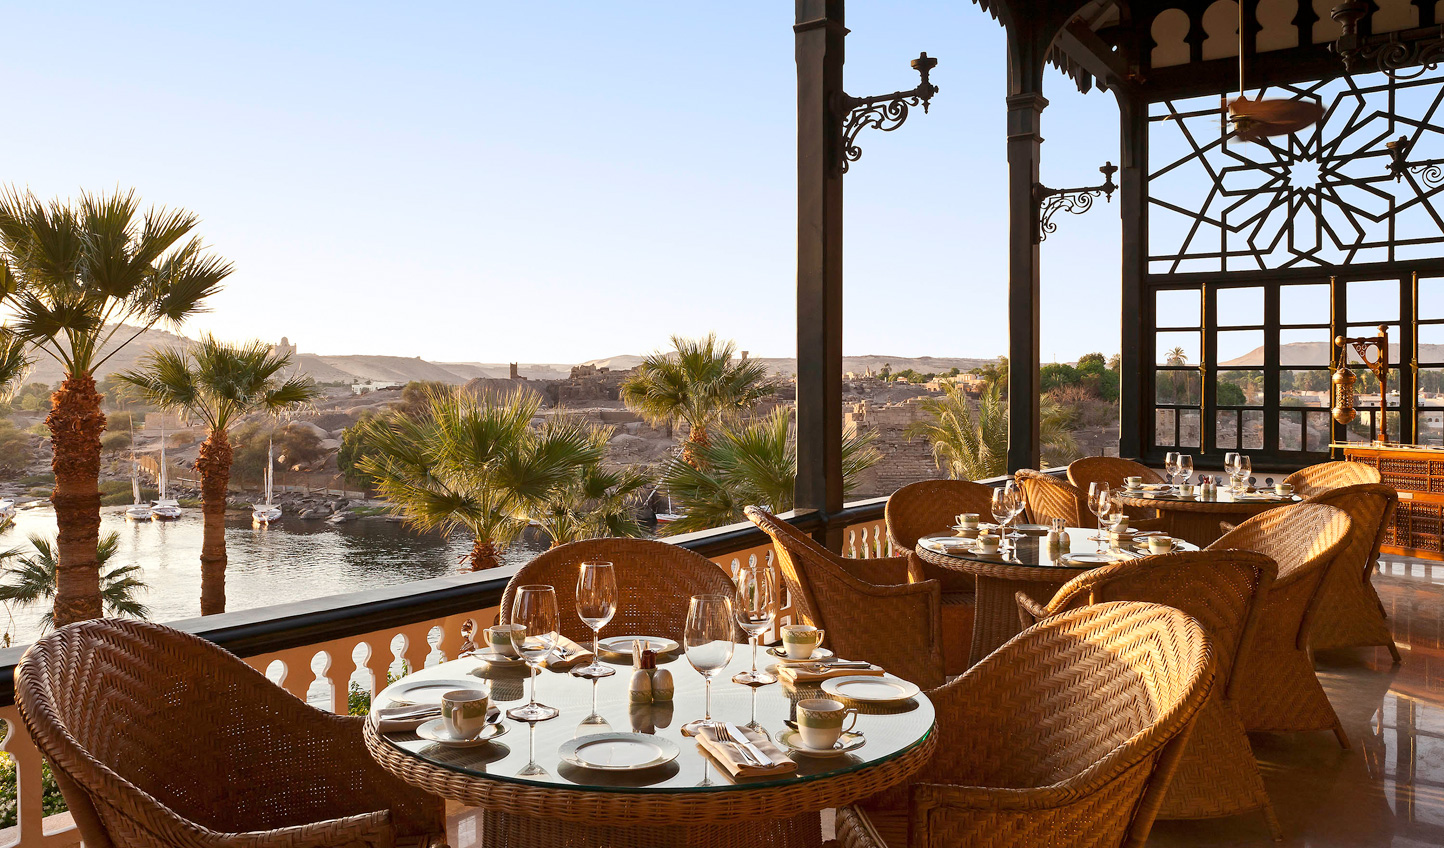 Sit down to dinner just as the sun begins to dip low and bathe the Nile in a golden glow